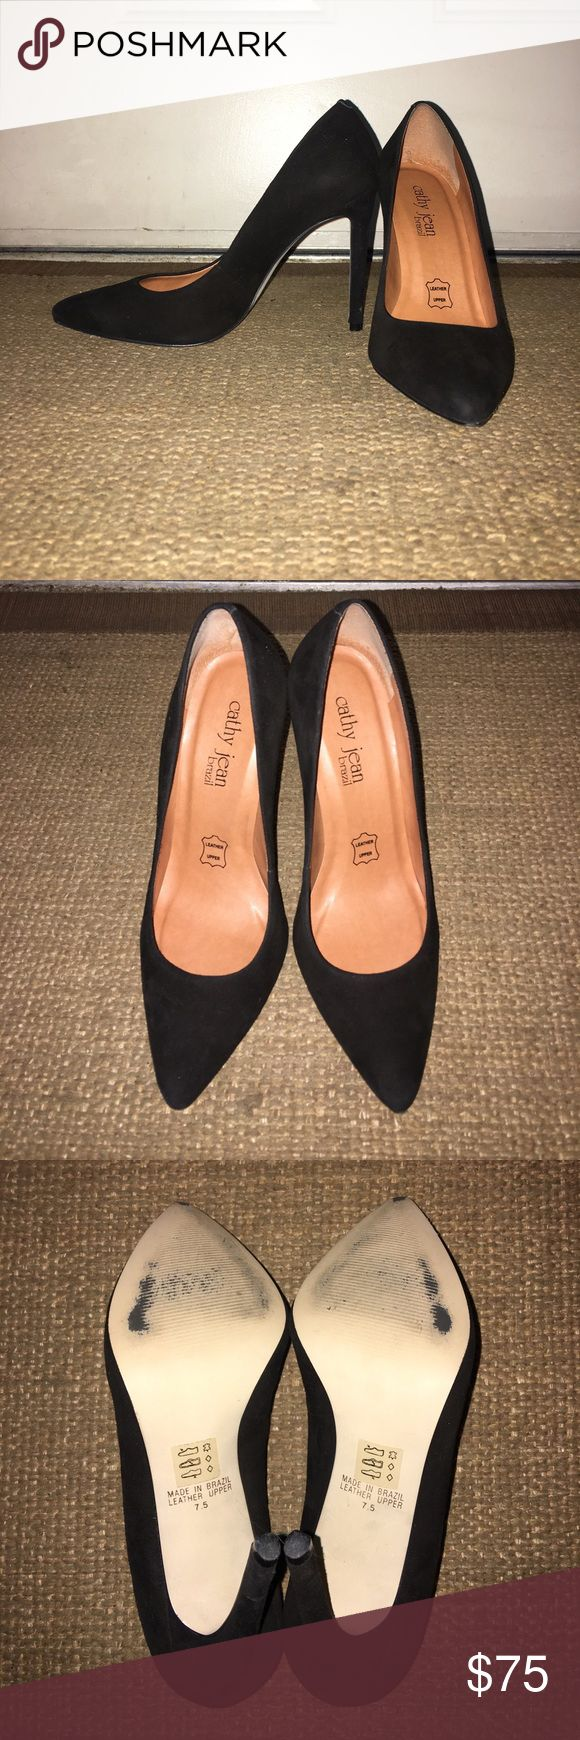 Cathy Jean Brazil Black Stiletto Heels Cathy Jean Brazil Black Stiletto Heels. NIB, worn once. Marked as 7.5, but sold as an 8, box says 8 as well. Fits narrow. Comes from a smoke free home. No trades and no low ball offers please! Cathy Jean Shoes Heels